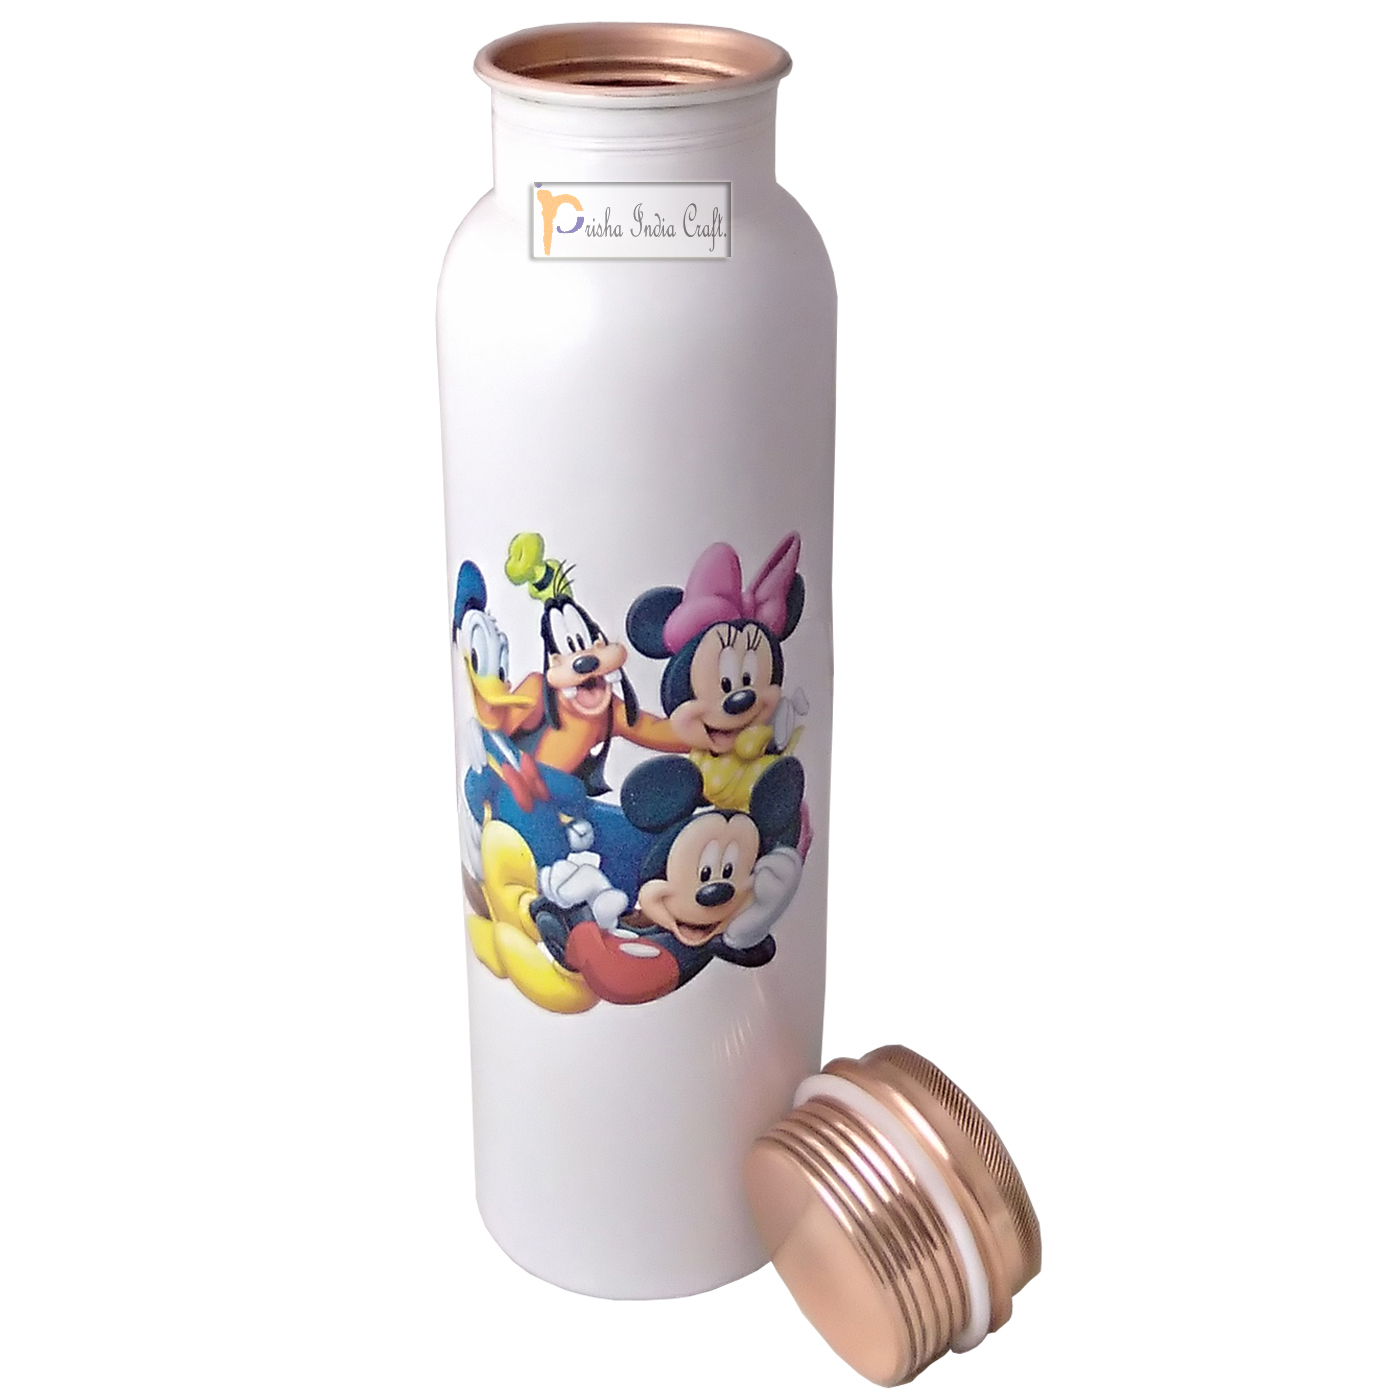 Digital Printed Pure Copper Water Bottle Kids School Water Bottle – Mickey Mouse and Donald Design, 1000 ML